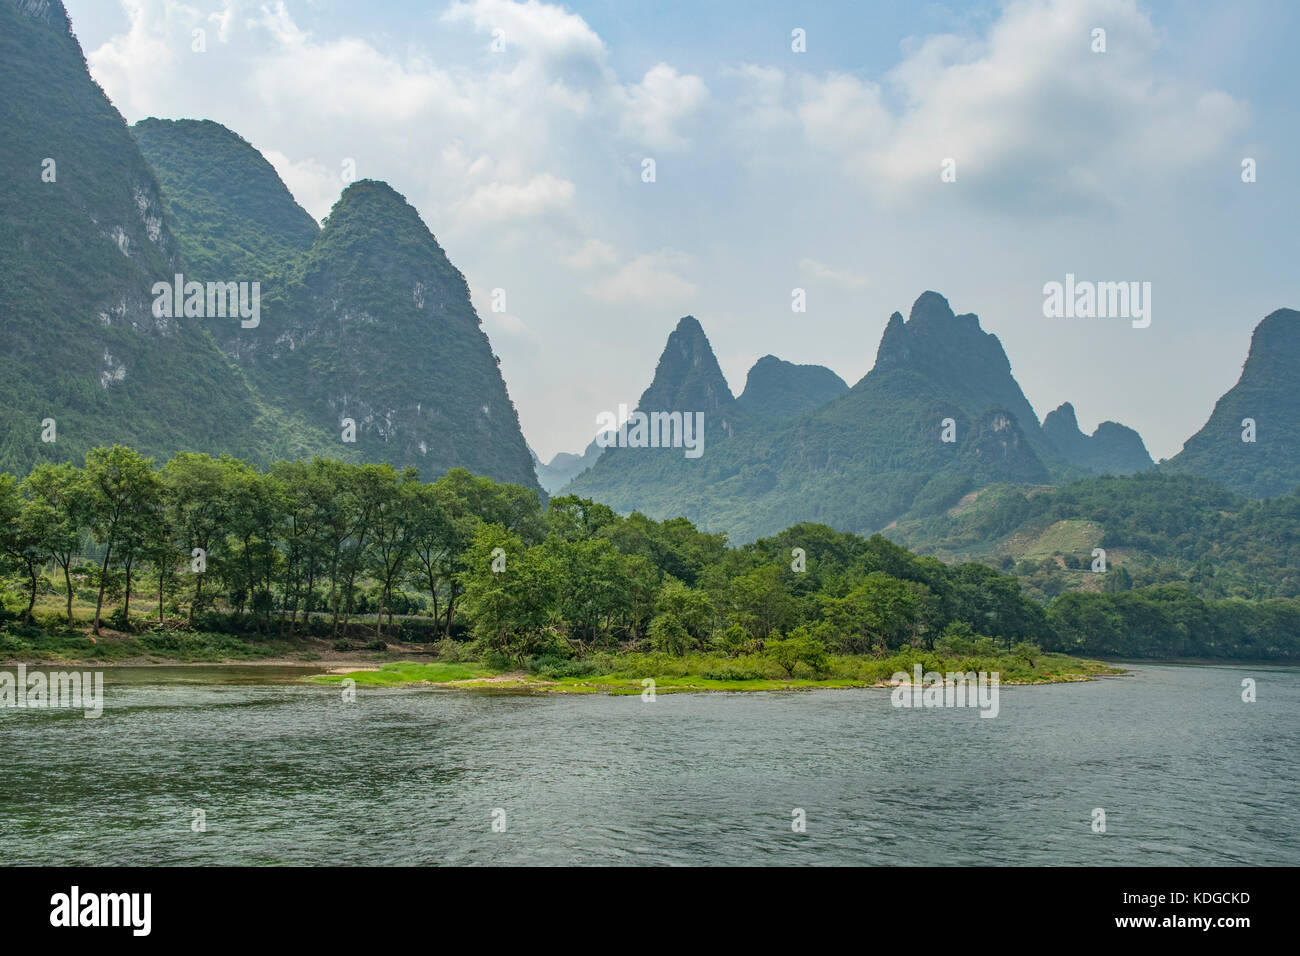 View on Lijiang River, South of Guilin, Guangxi, China - Stock Image